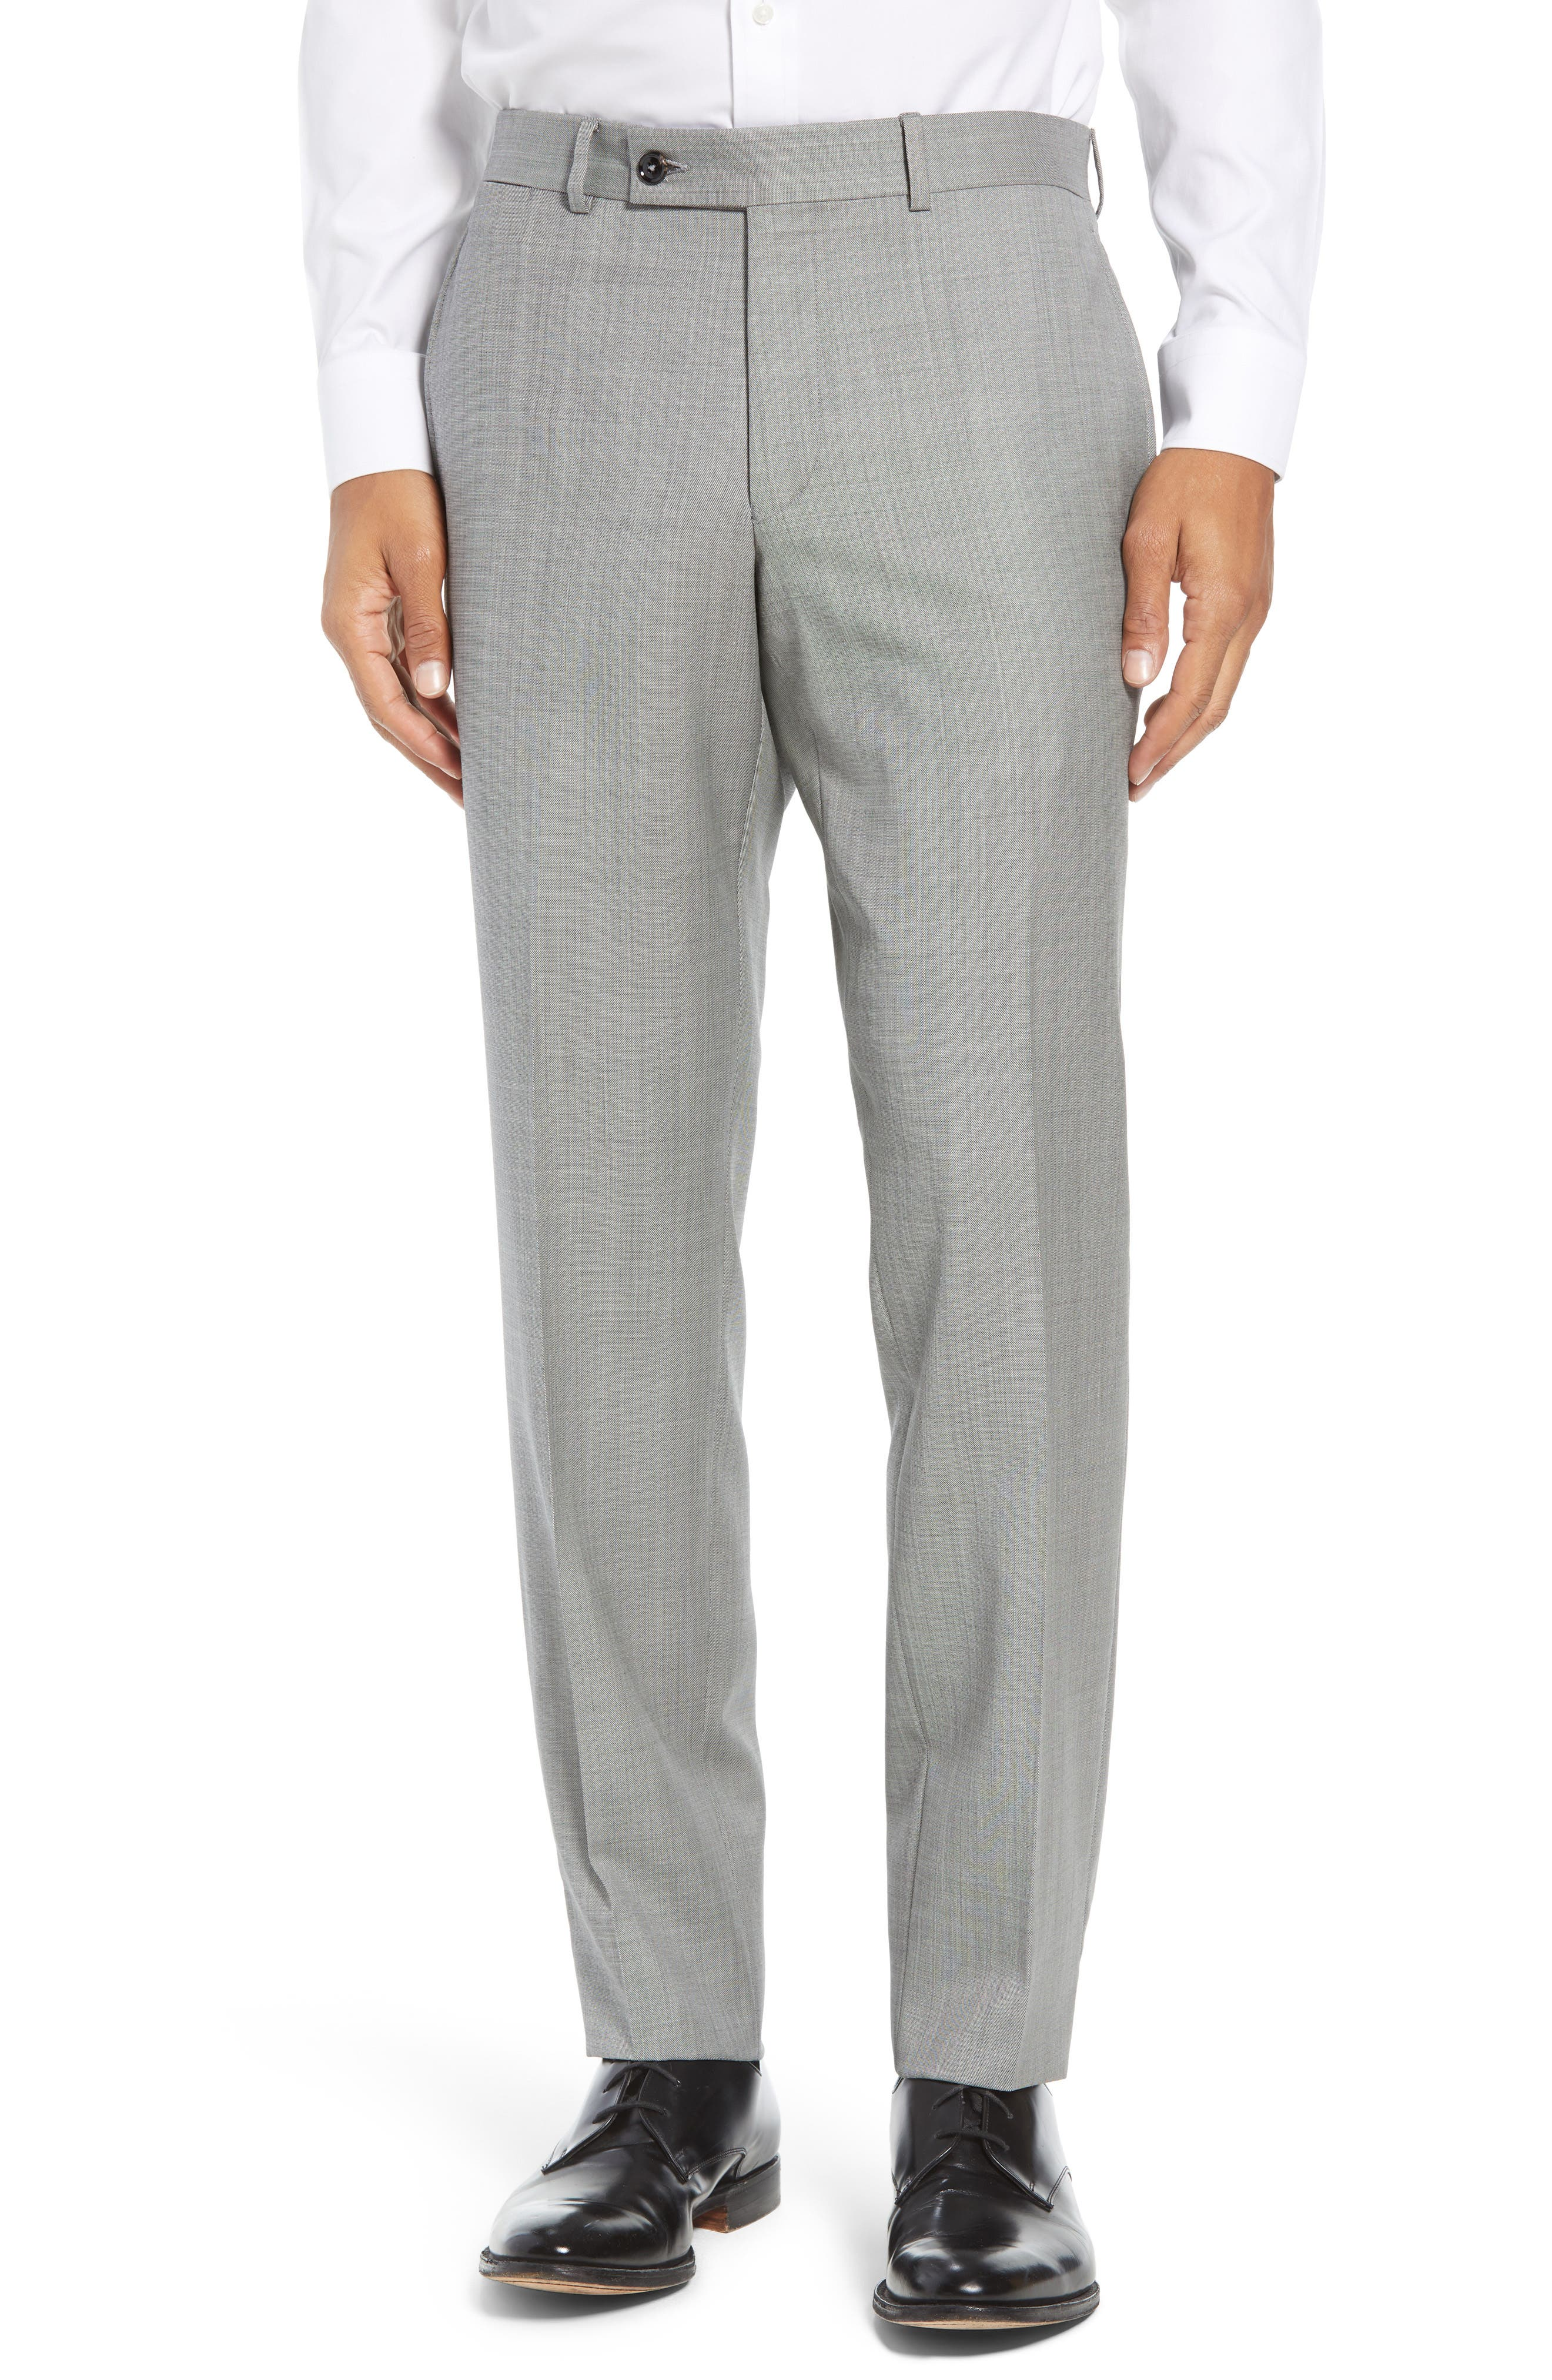 TED BAKER LONDON, Jay Trim Fit Solid Wool Suit, Alternate thumbnail 6, color, LIGHT GREY